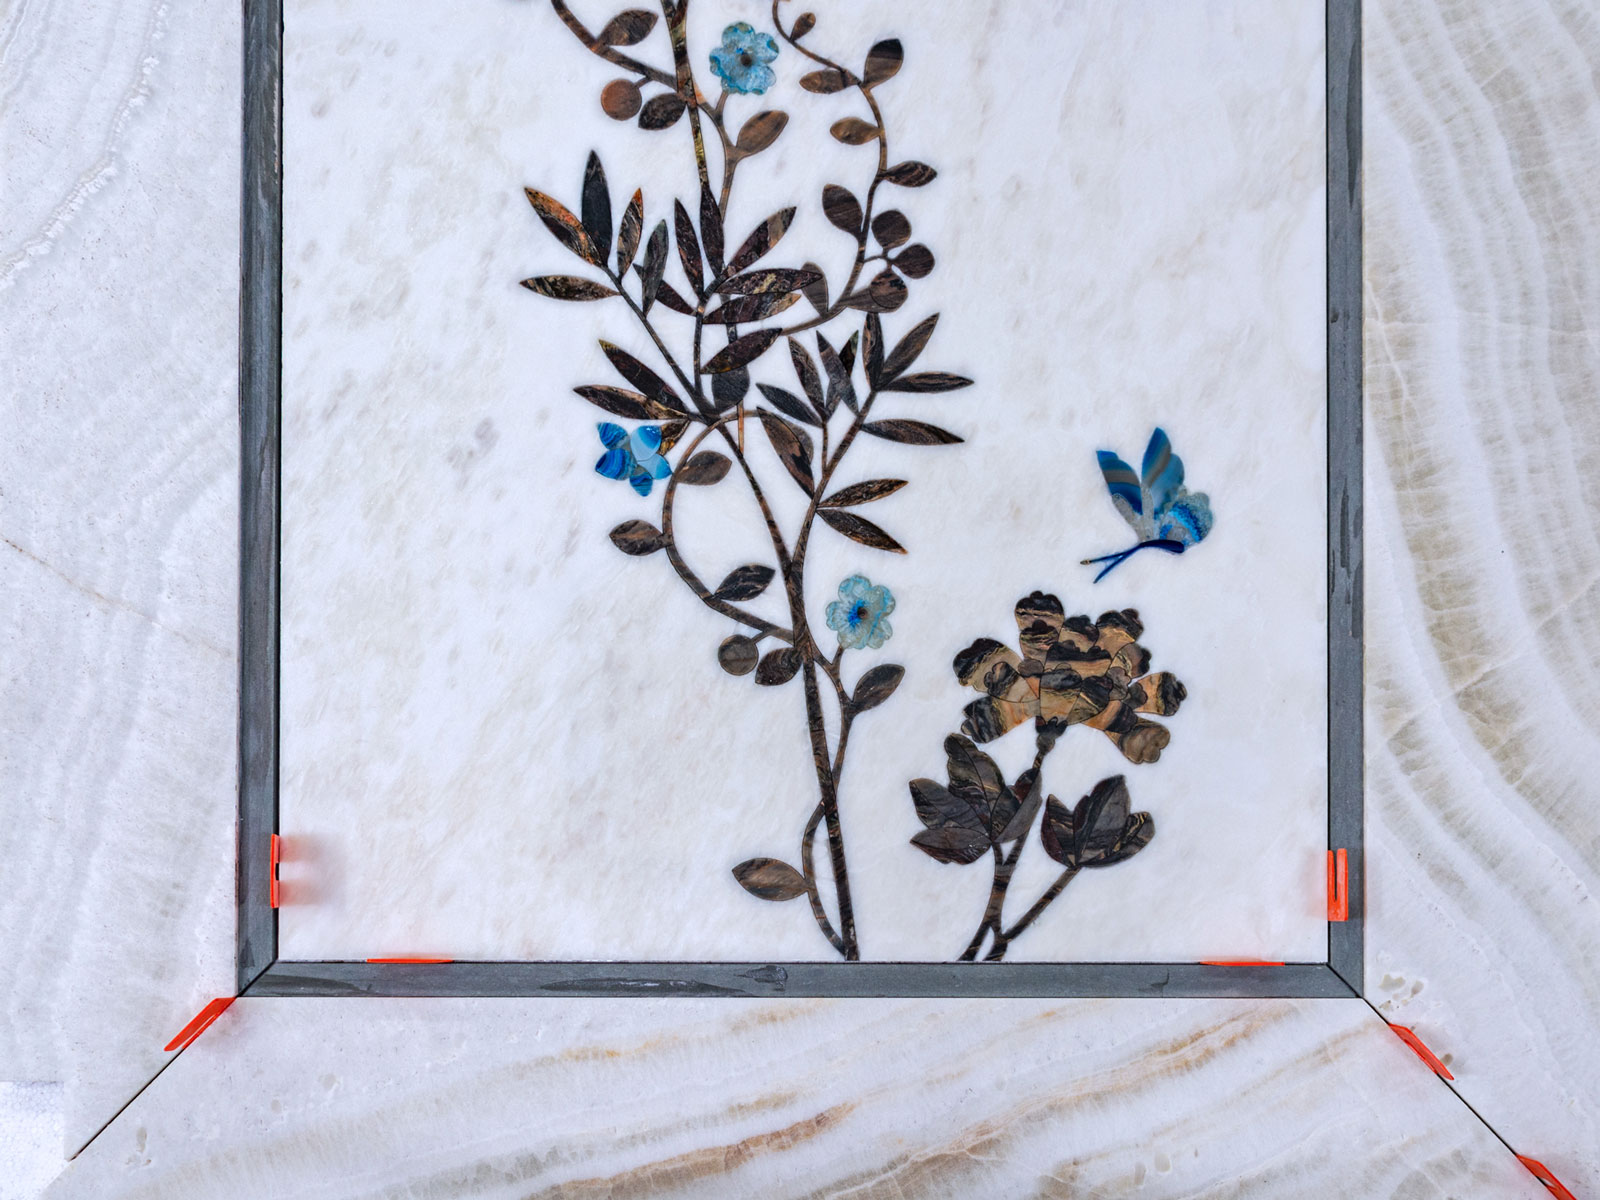 Stone inlay with flowers